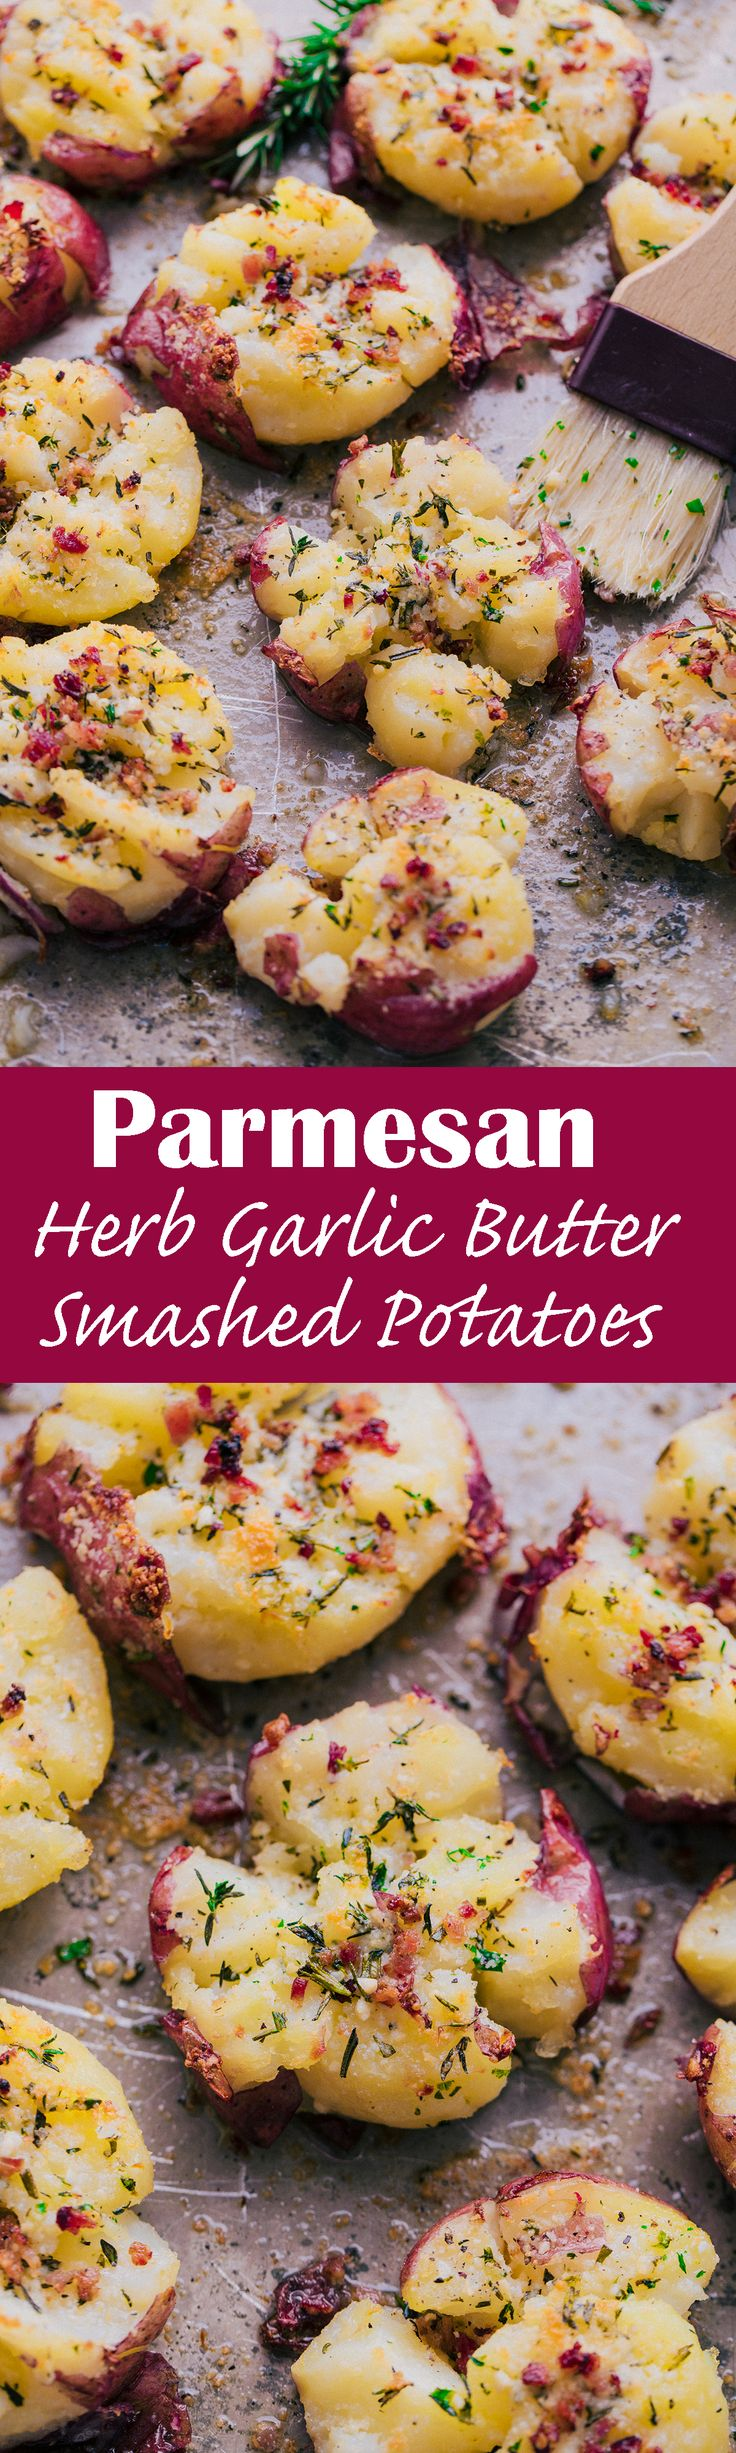 HERB GARLIC BUTTER SMASHED POTATOES